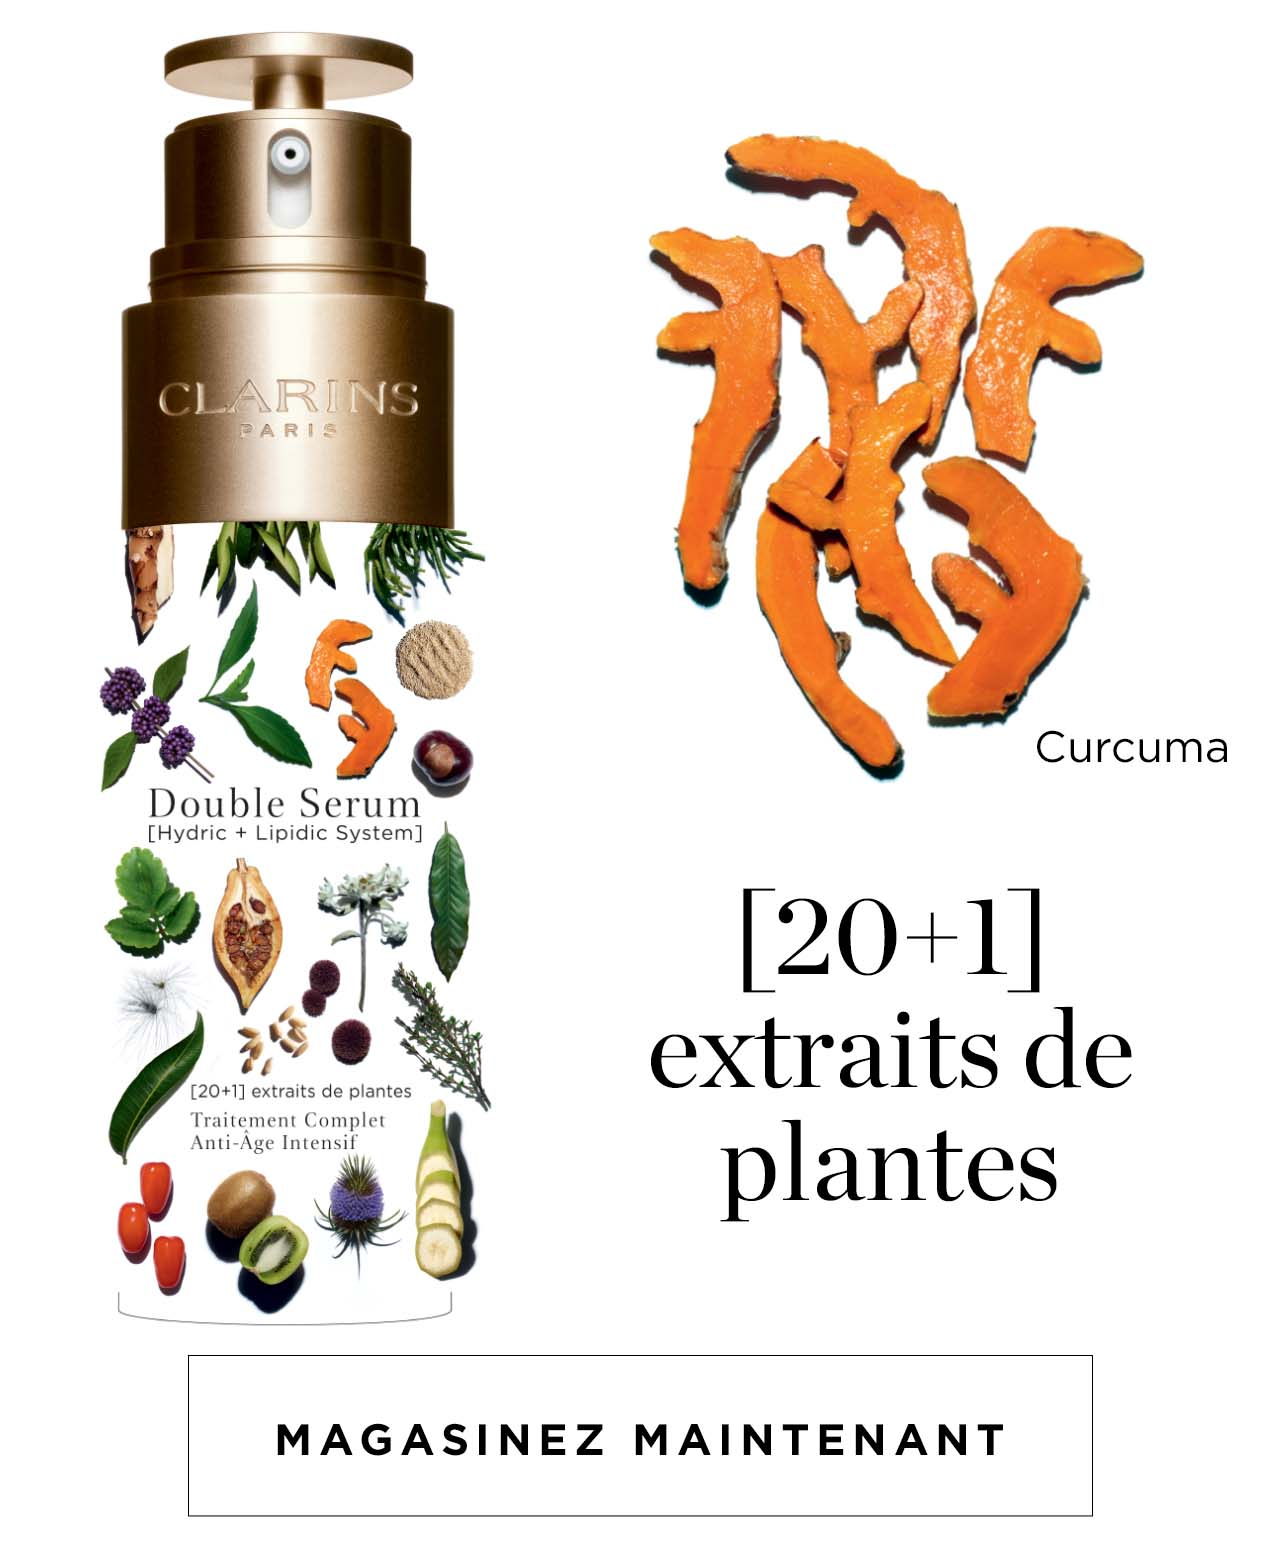 Double Serum extraits de plantes